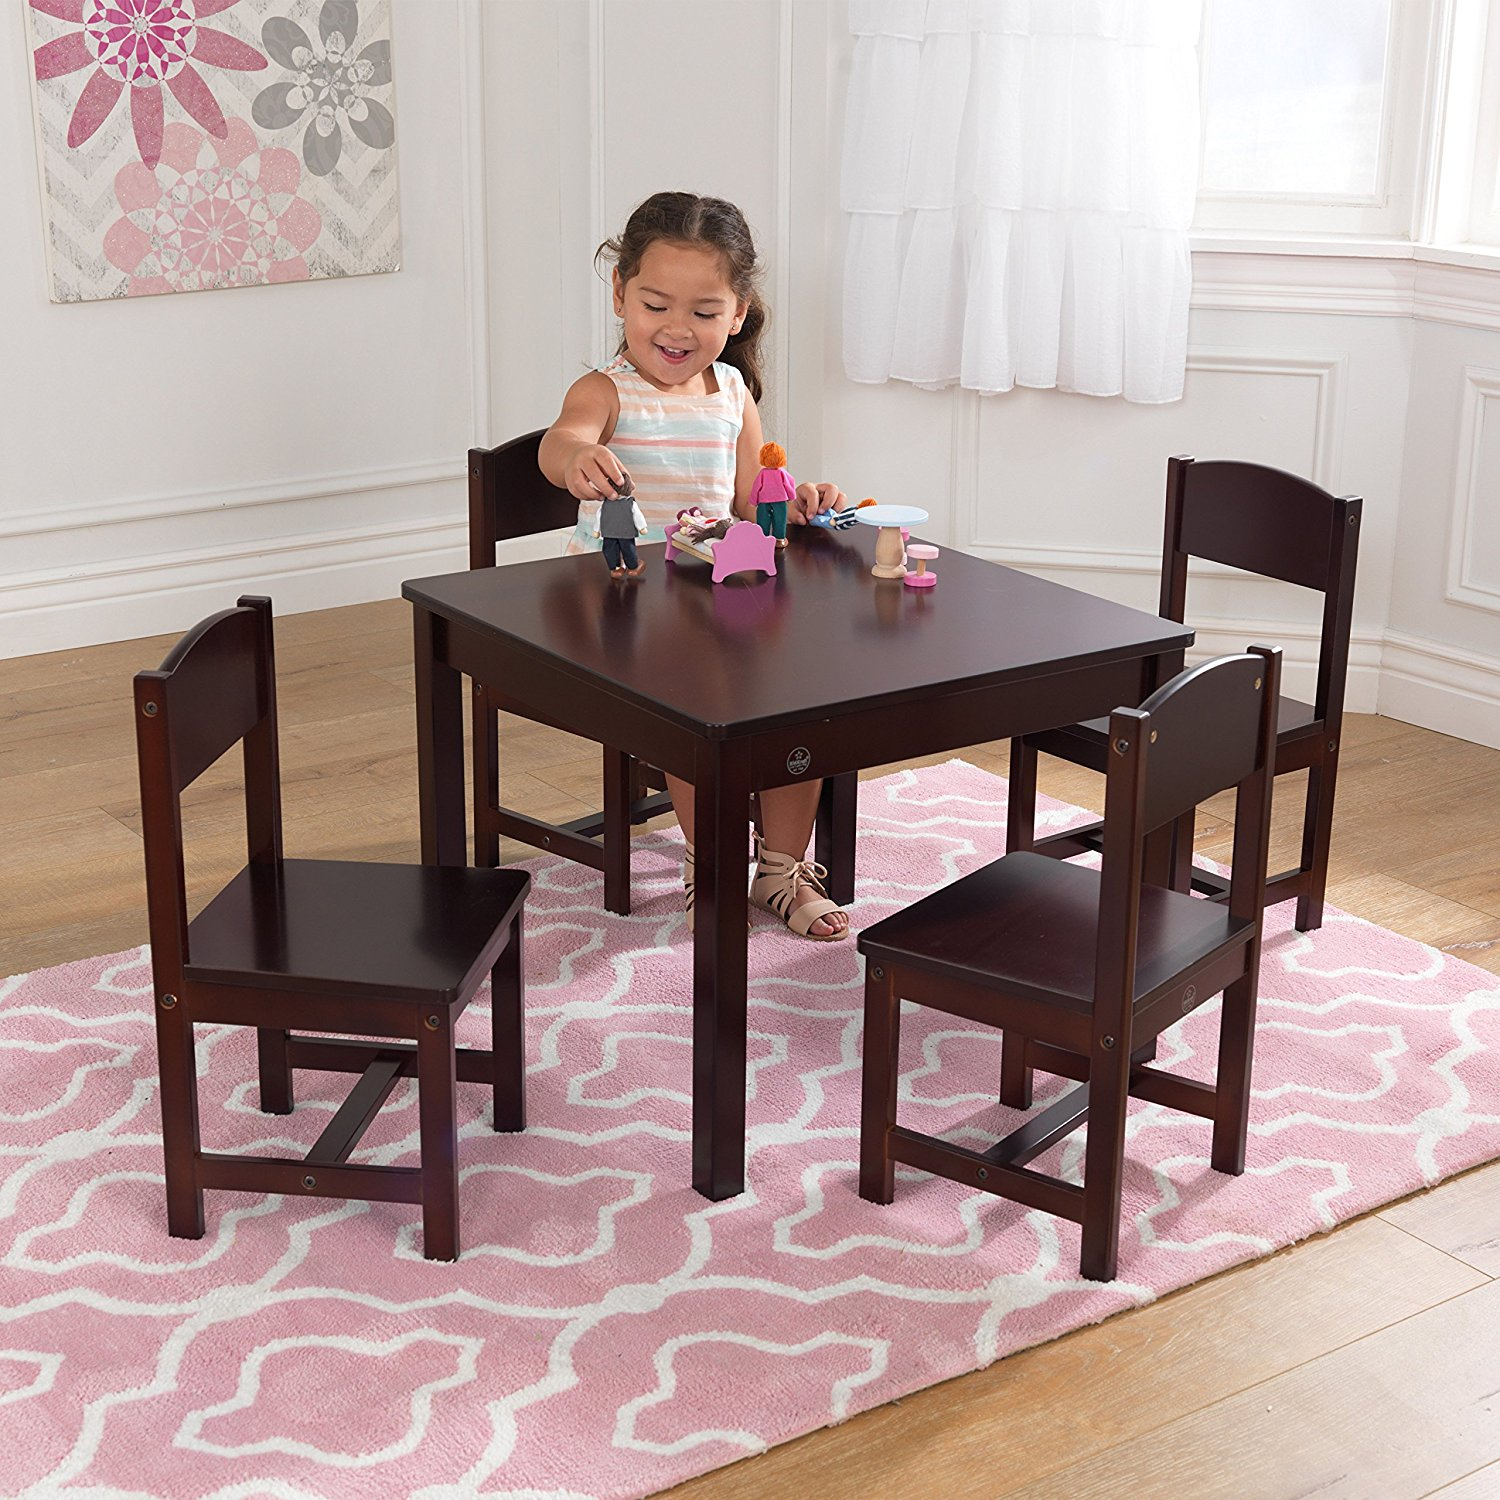 Kidkraft Farmhouse Table And Chair Set 28 Images New